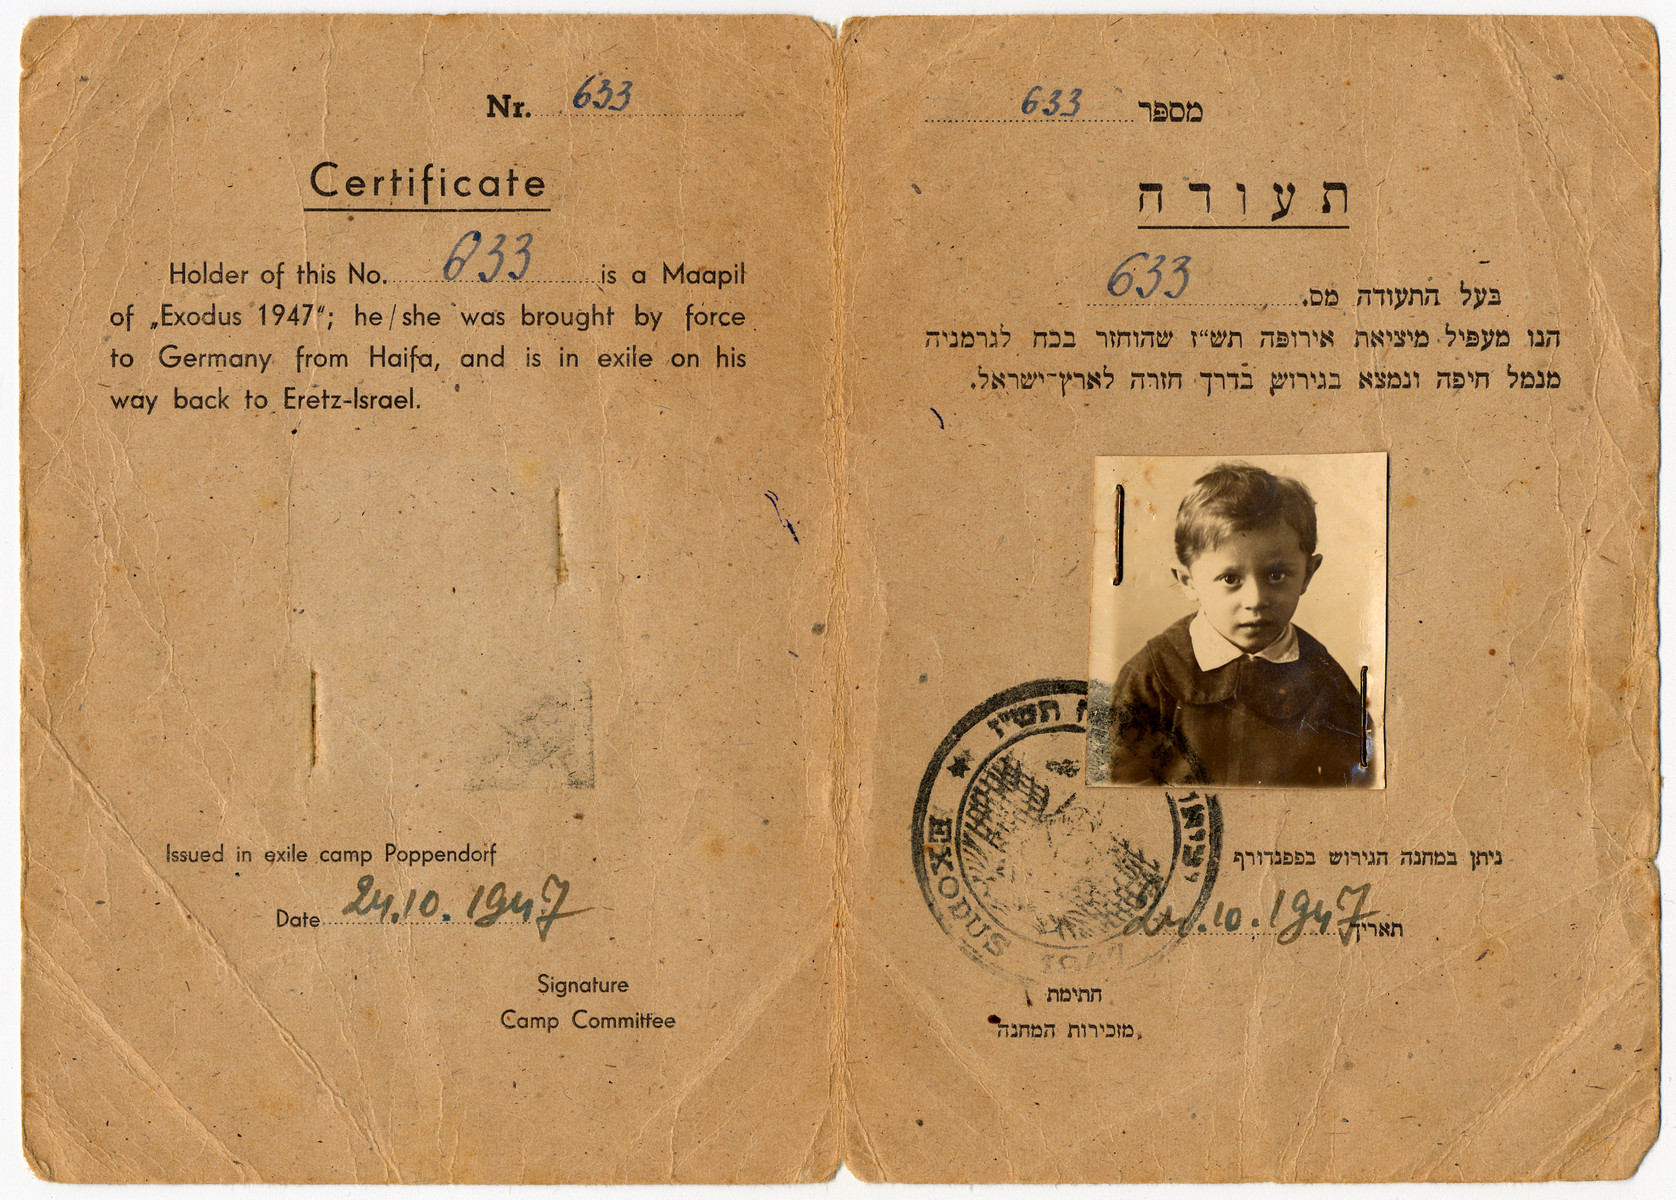 Identification card issued to three-year-old Mendel Goldband identifying him as having been a passenger on The Exodus.